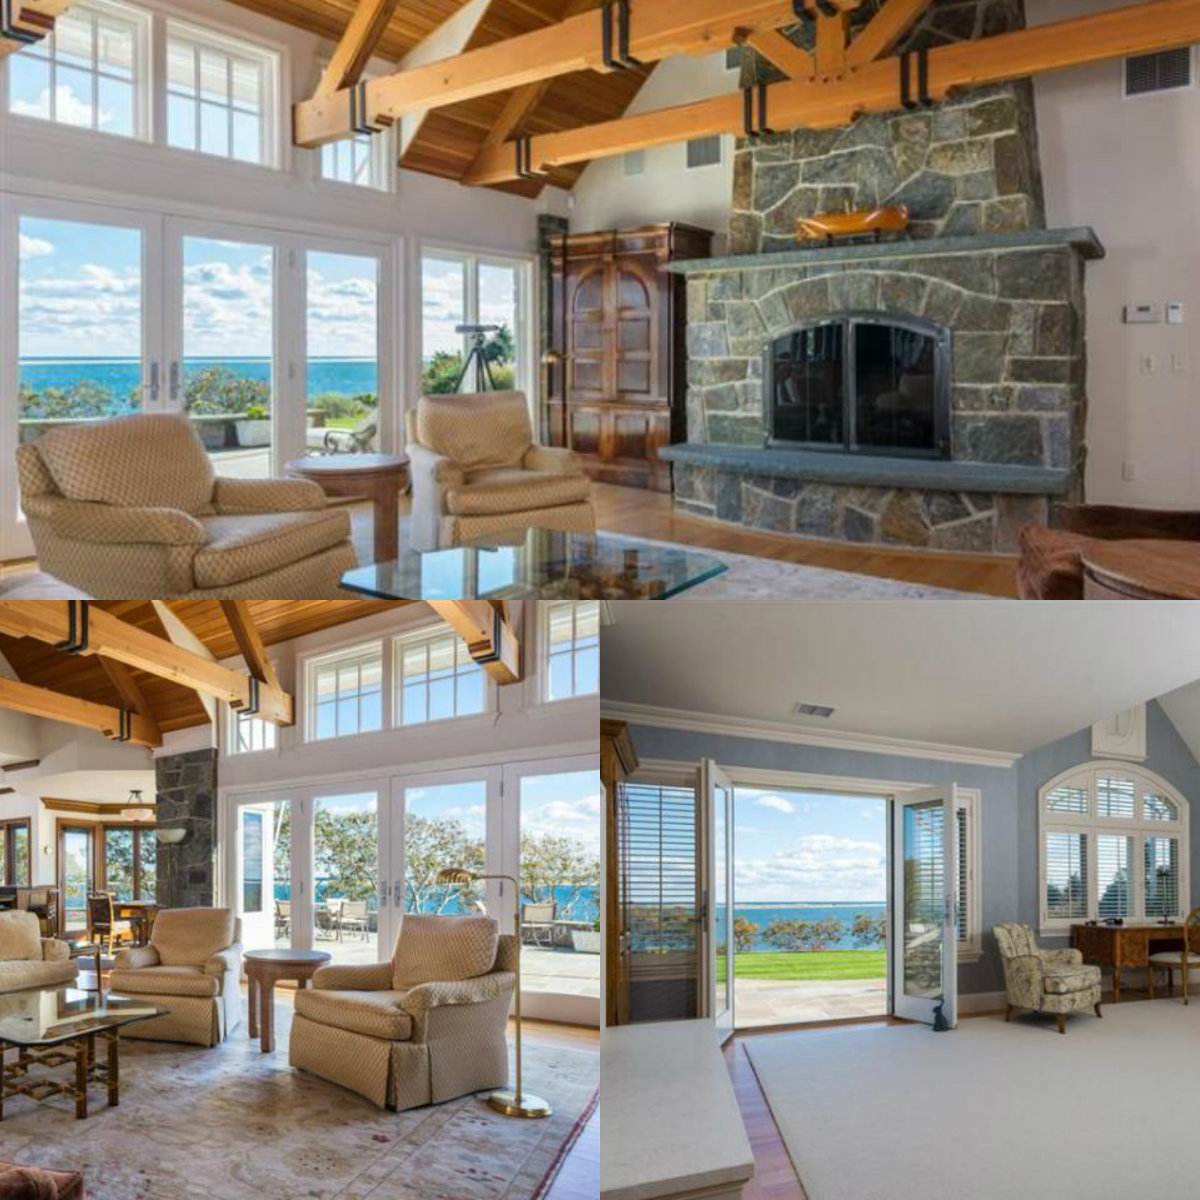 Images of rooms with windows in 75 Tilipi Run in Chatham on Cape Cod MA